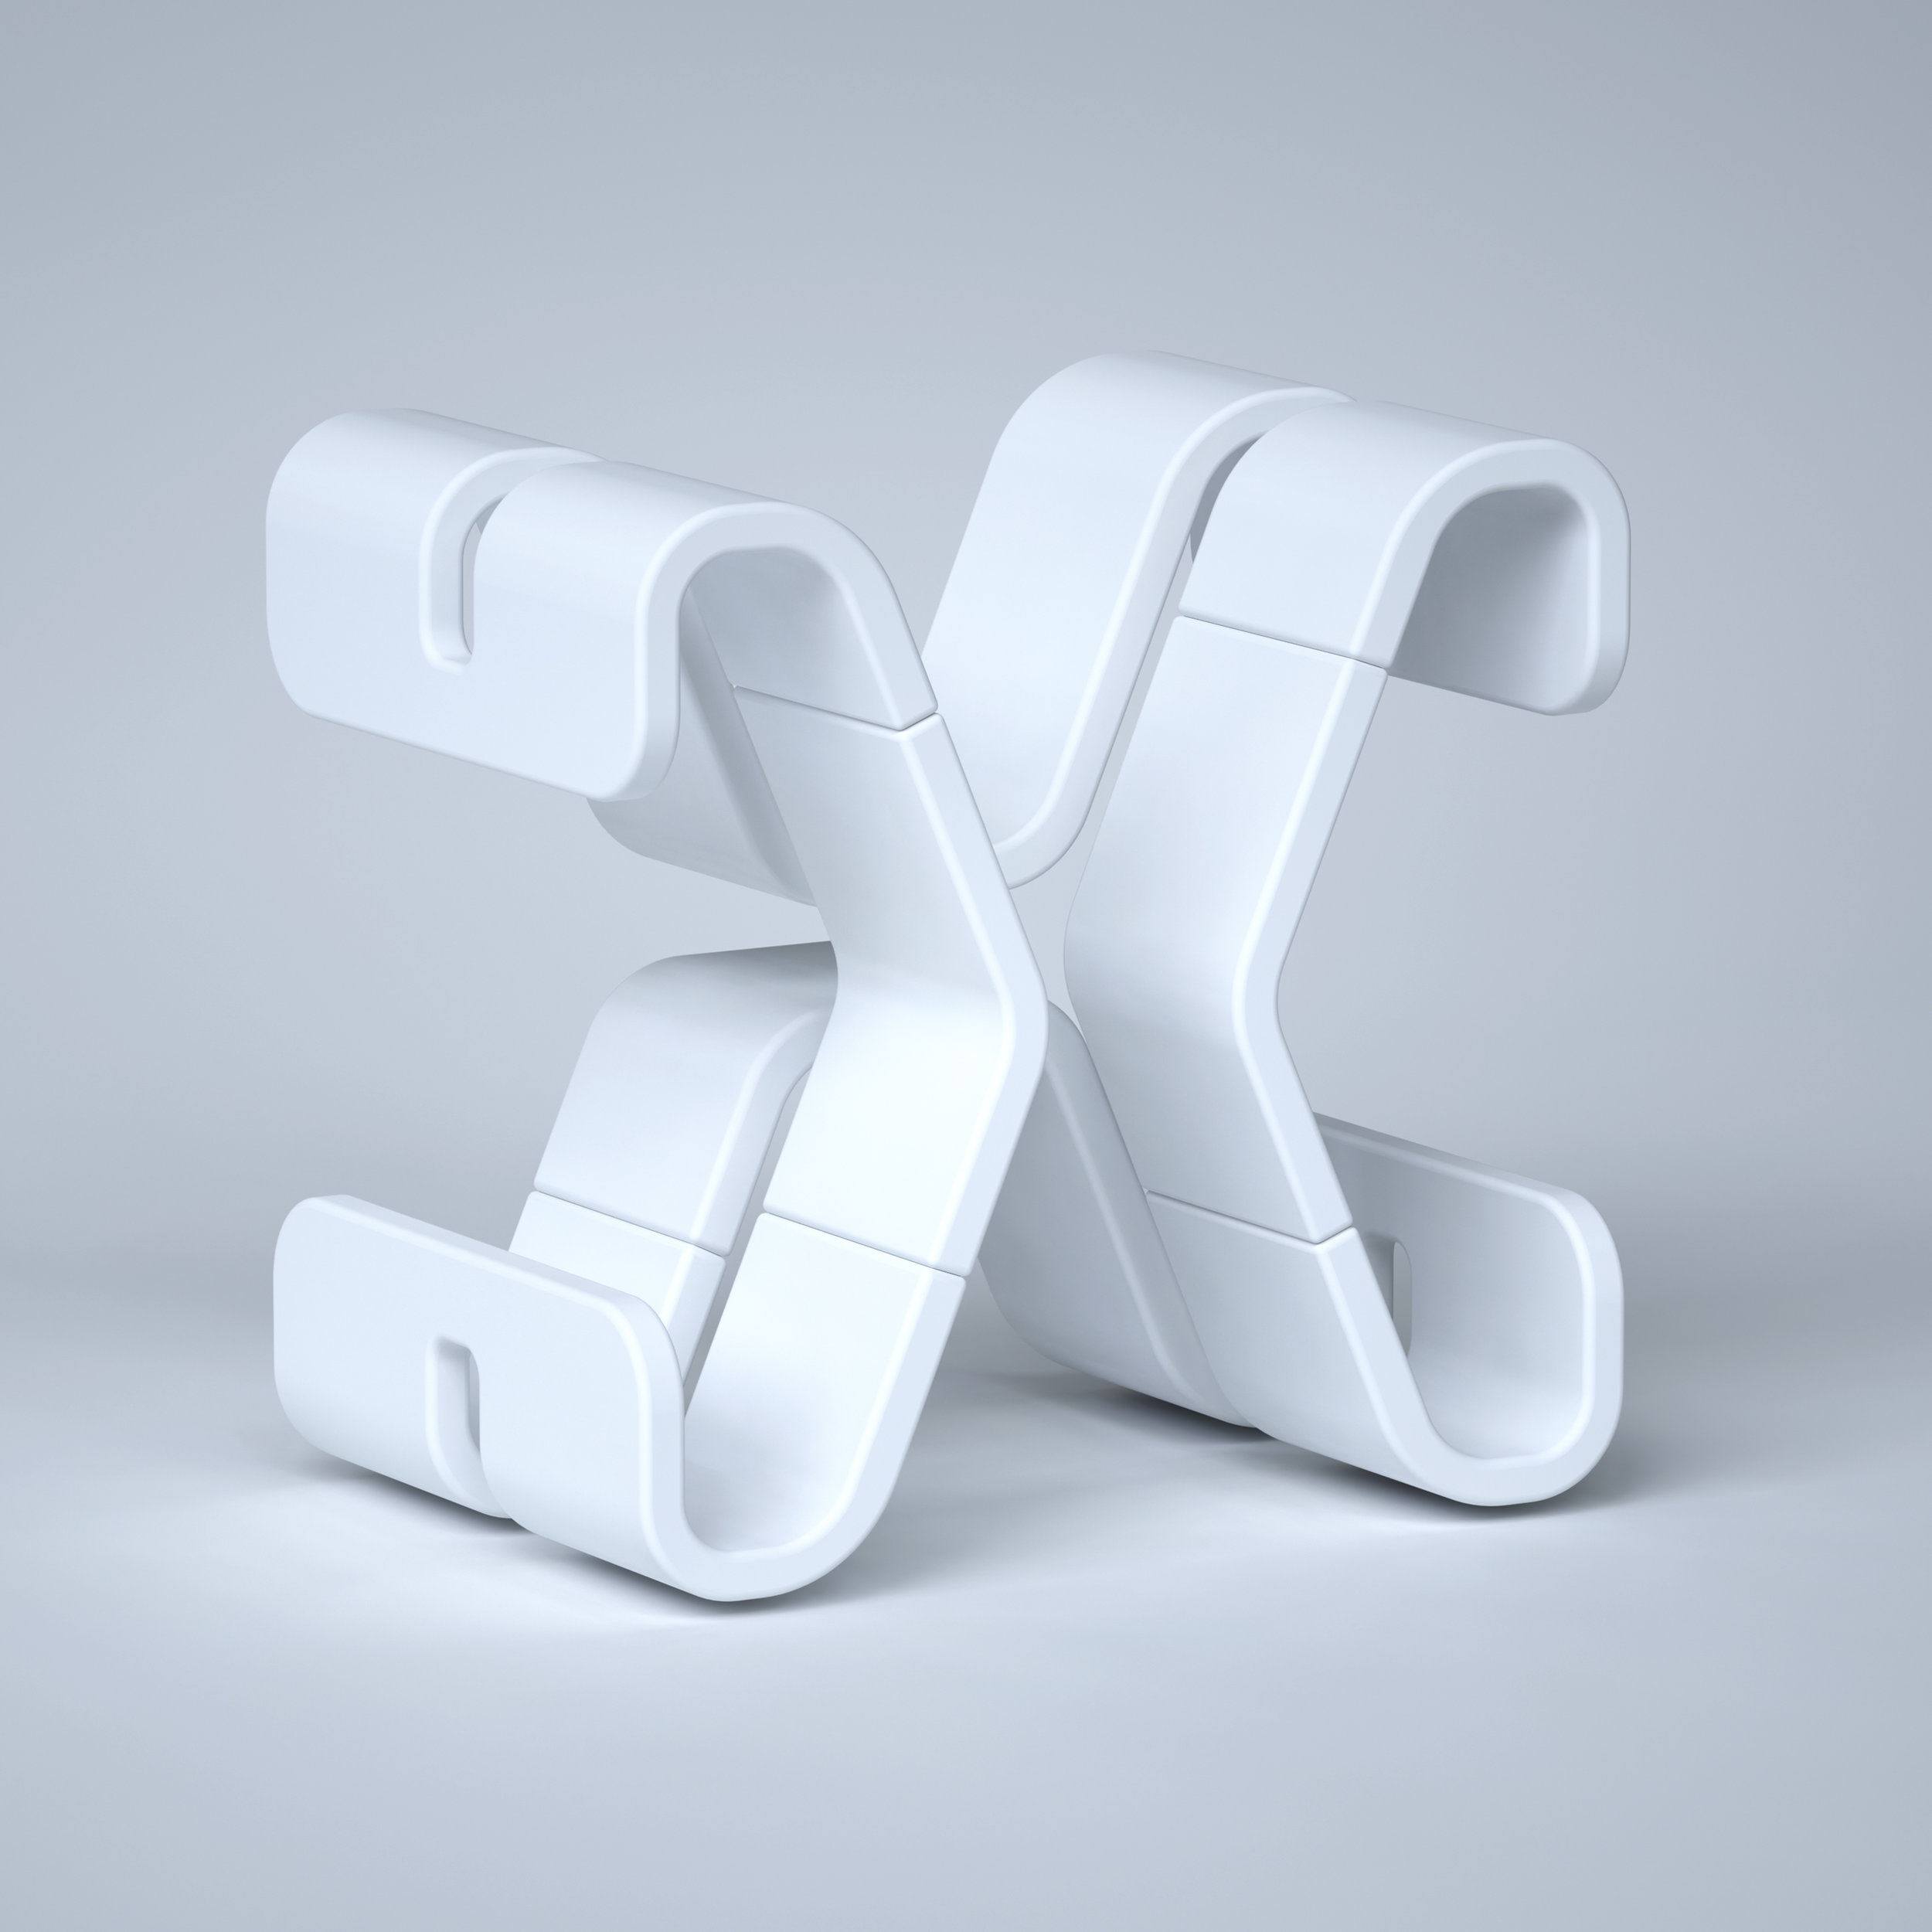 36 Days of Type 2019 - 3D Typeform letter X clay model.